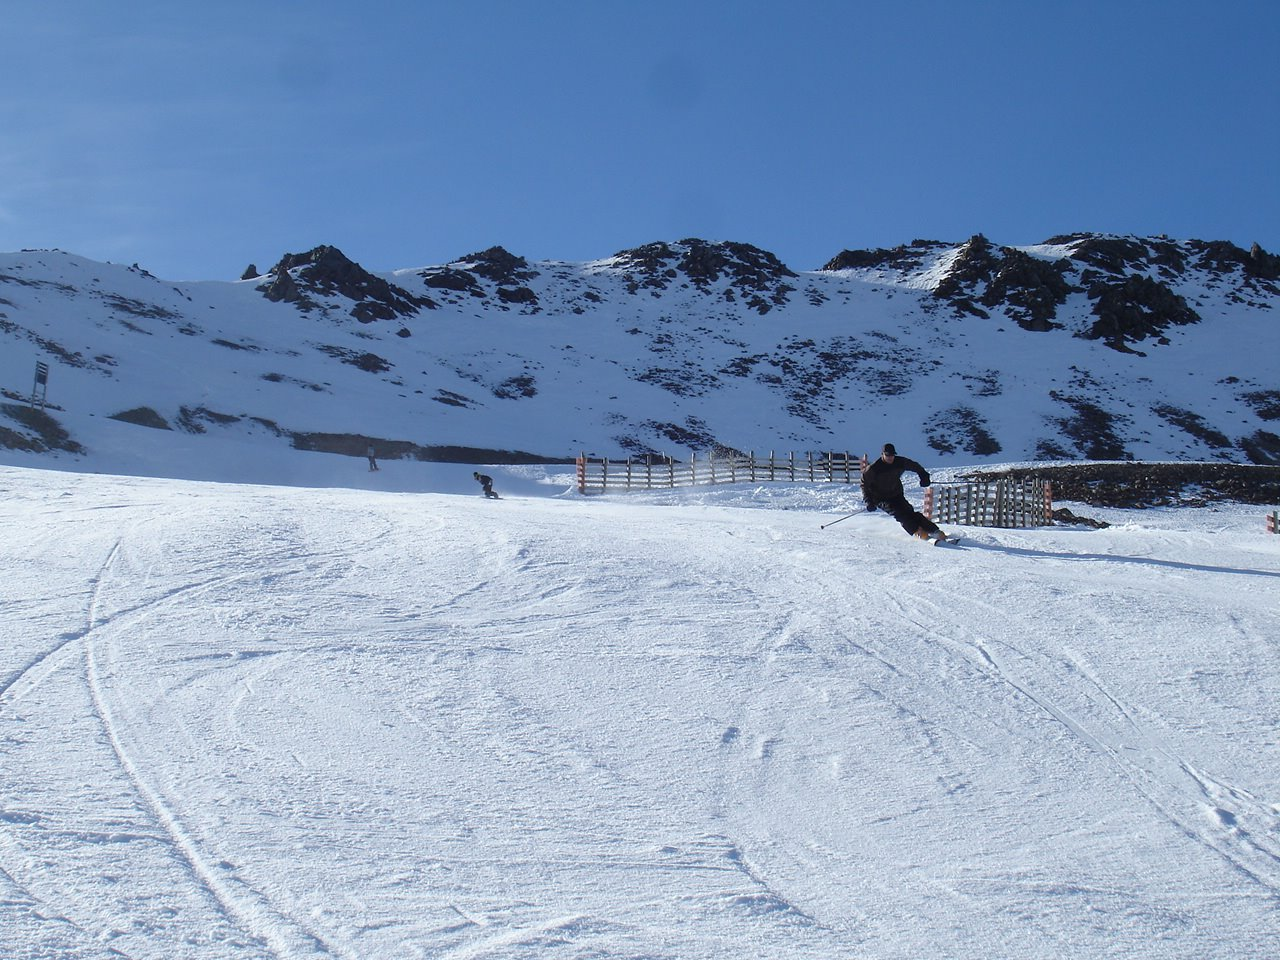 Nueva Zelanda, New Zealand, Isla del Sur, South Island, Rainbow Ski Area